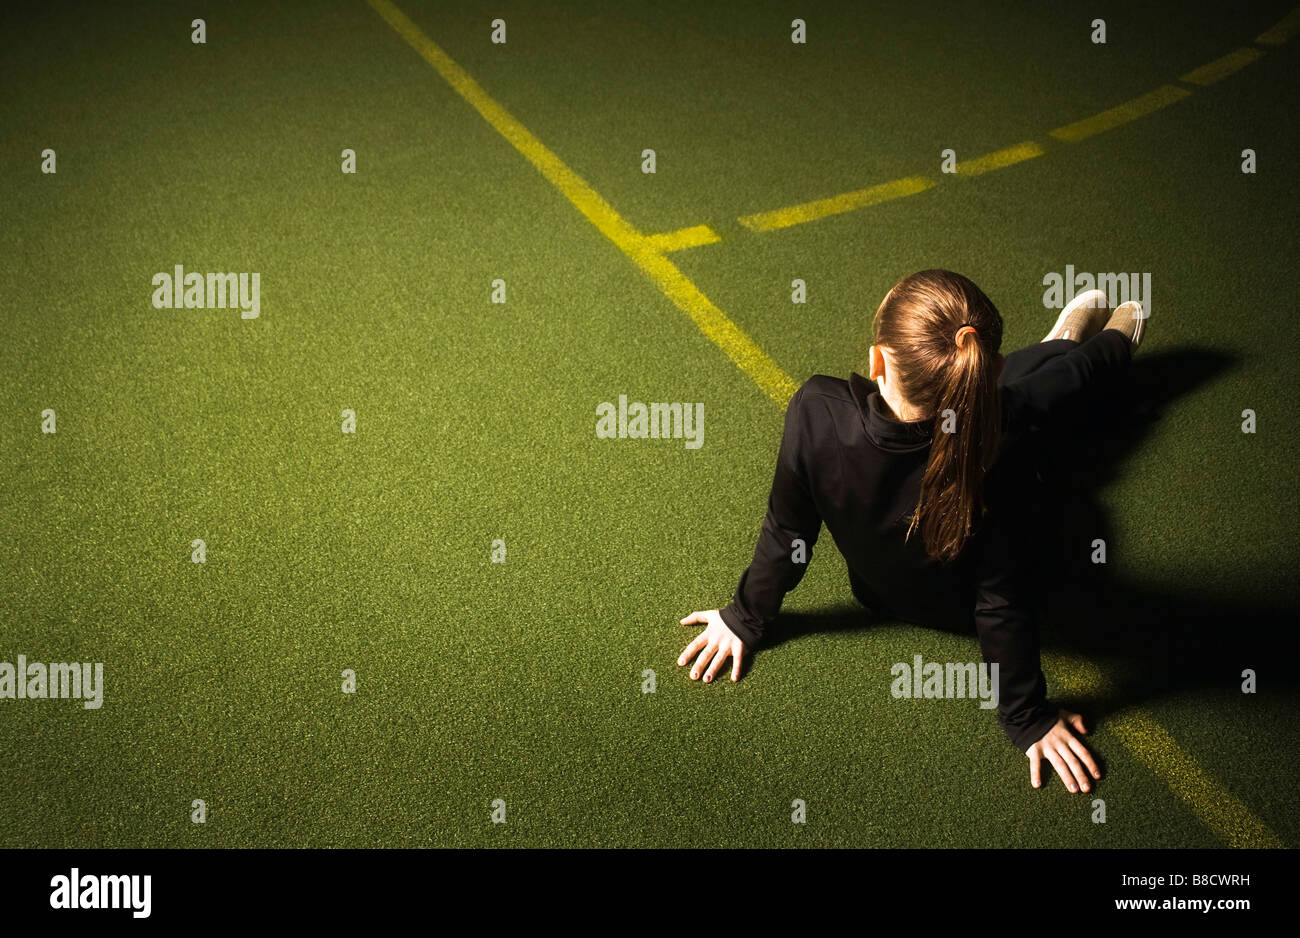 Girl sitting on the sidelines - Stock Image